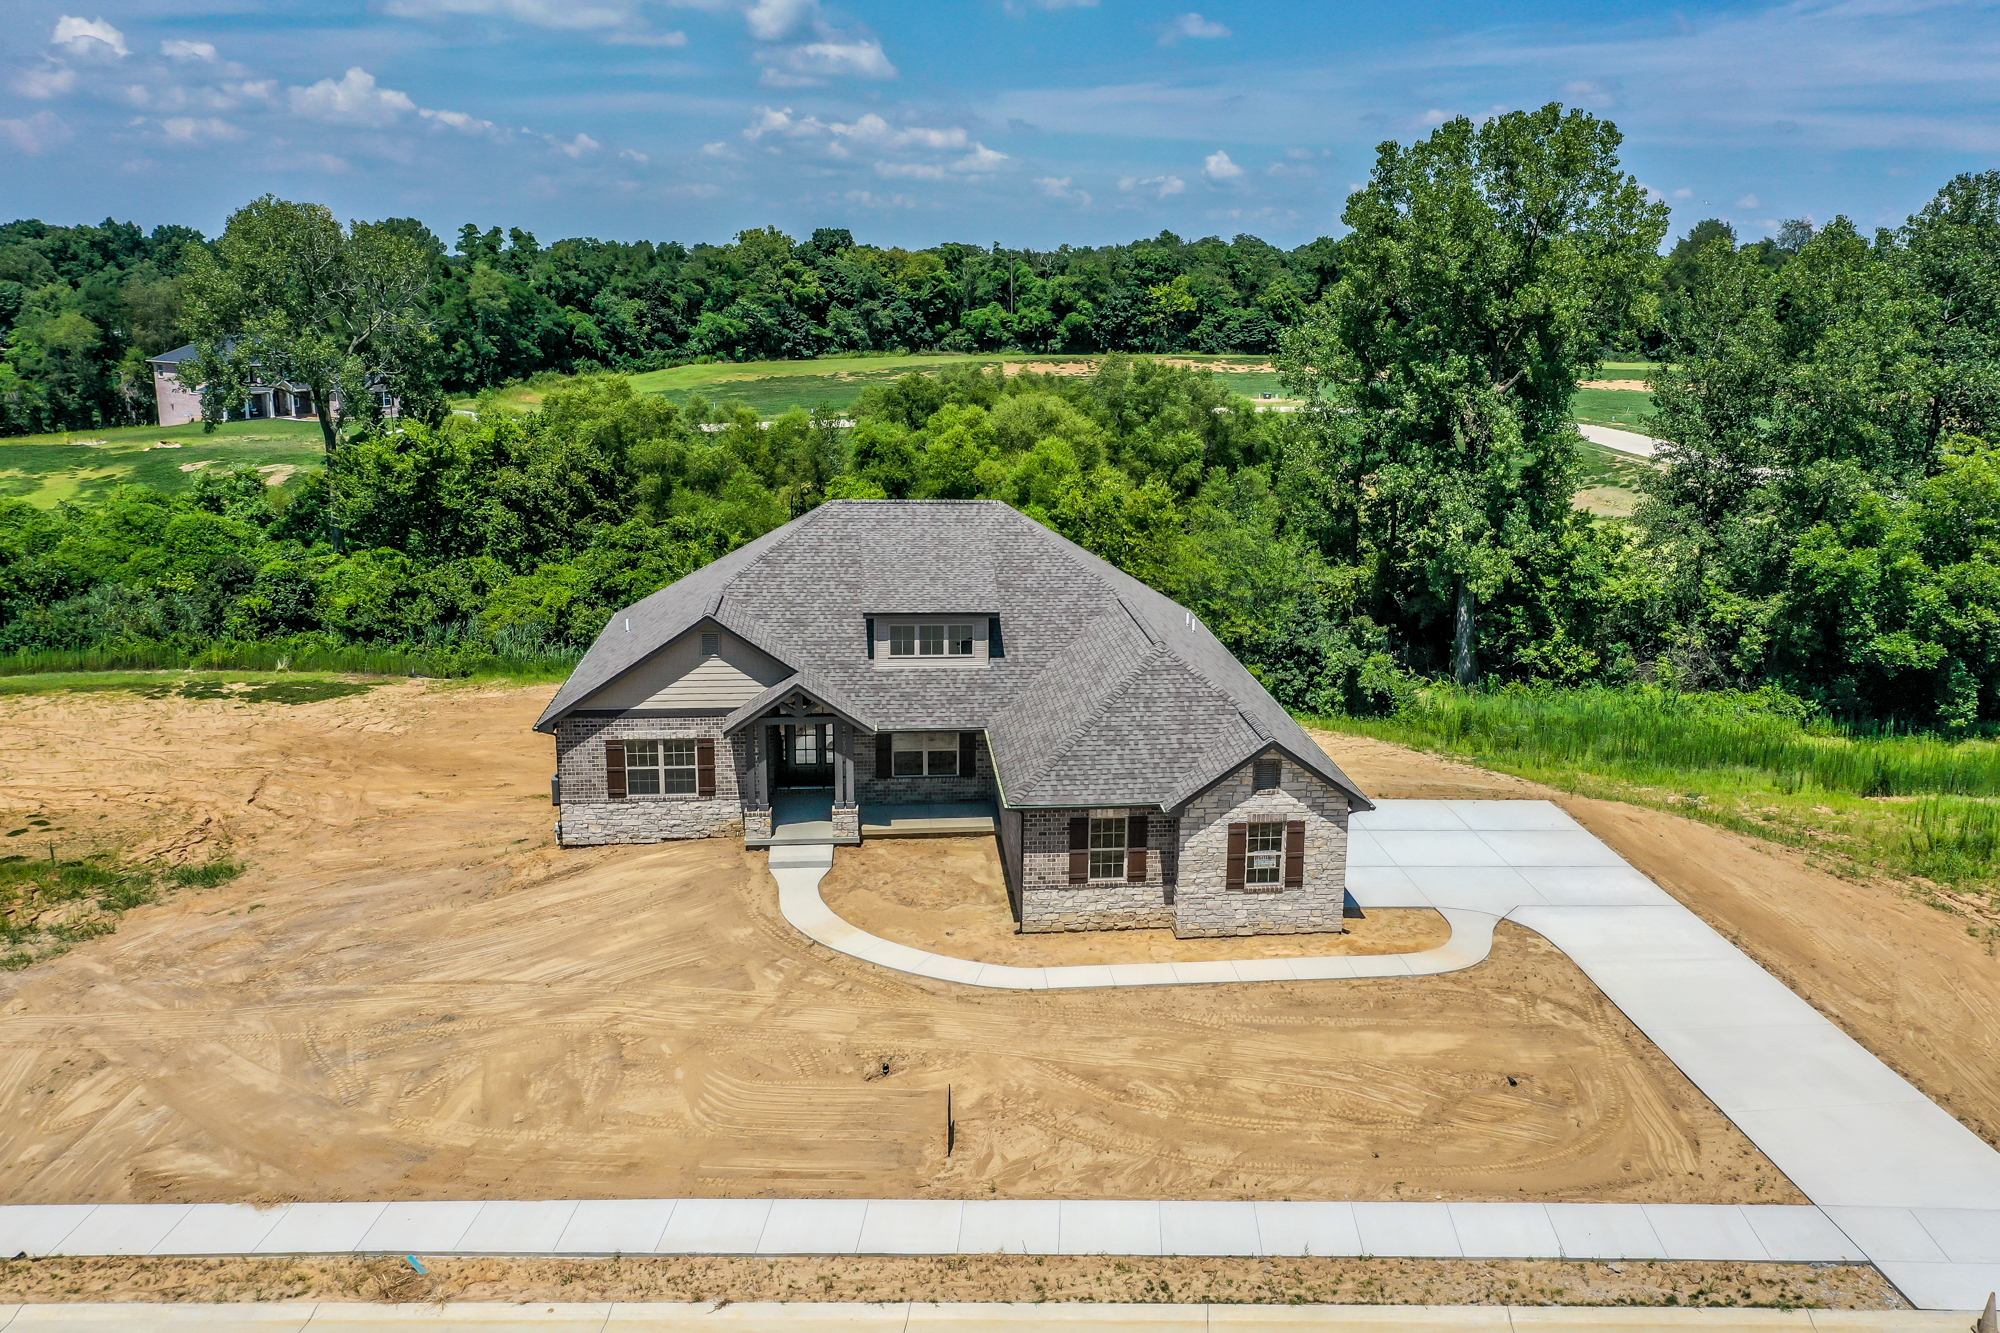 New_Construction_Homes_For_Sale_Shiloh_Illinois_Near_Scott_AFB-42.jpg